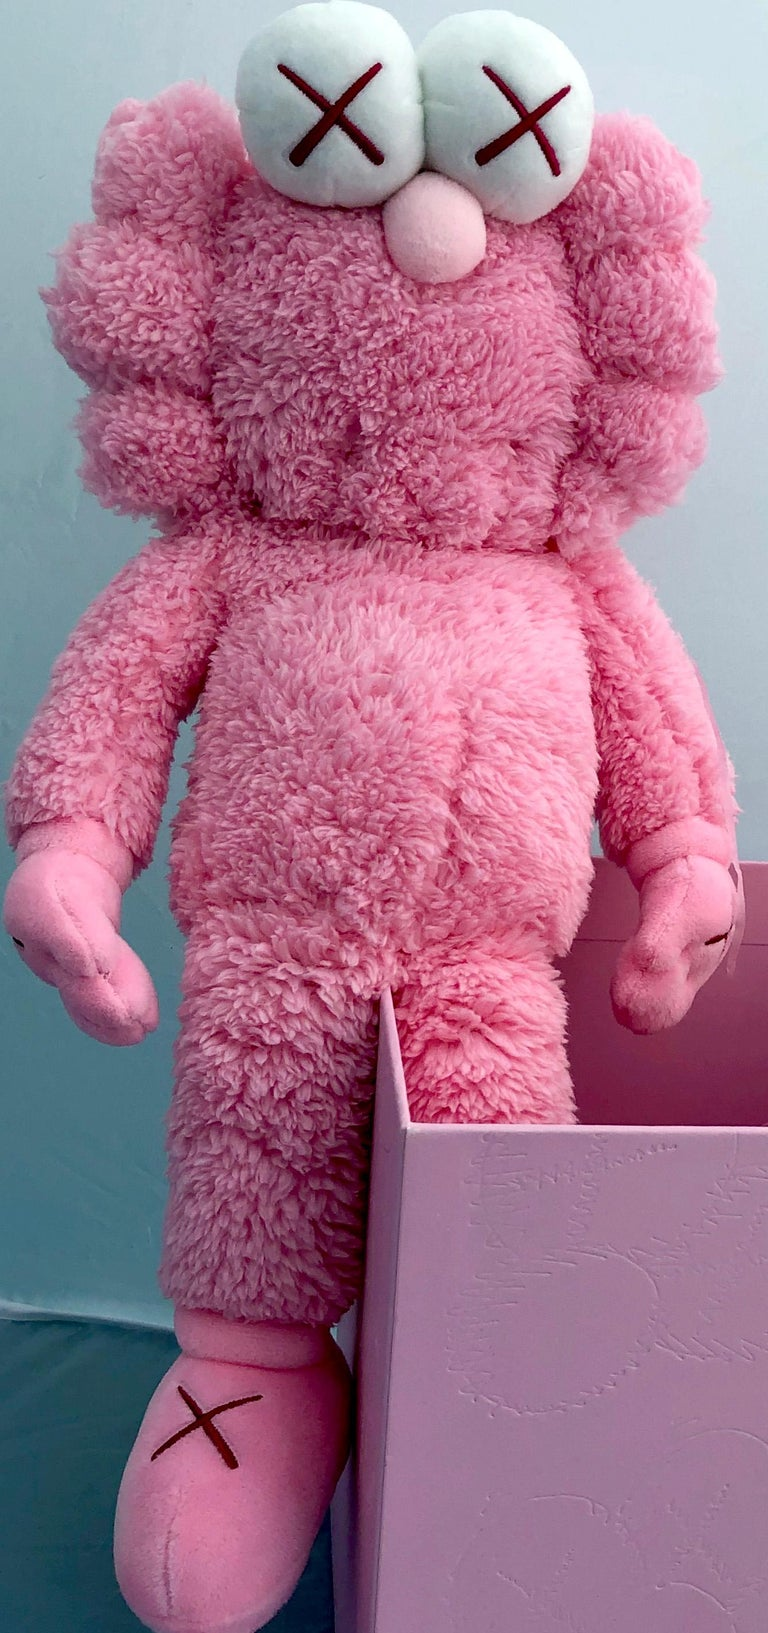 KAWS BFF Plush Companion (KAWS Pink BFF Plush)  New in its original packaging. As only 3,000 pieces were produced, the pink plush was sought-after and coveted by fans and collectors alike, and while most were unable to get their hands on the piece.